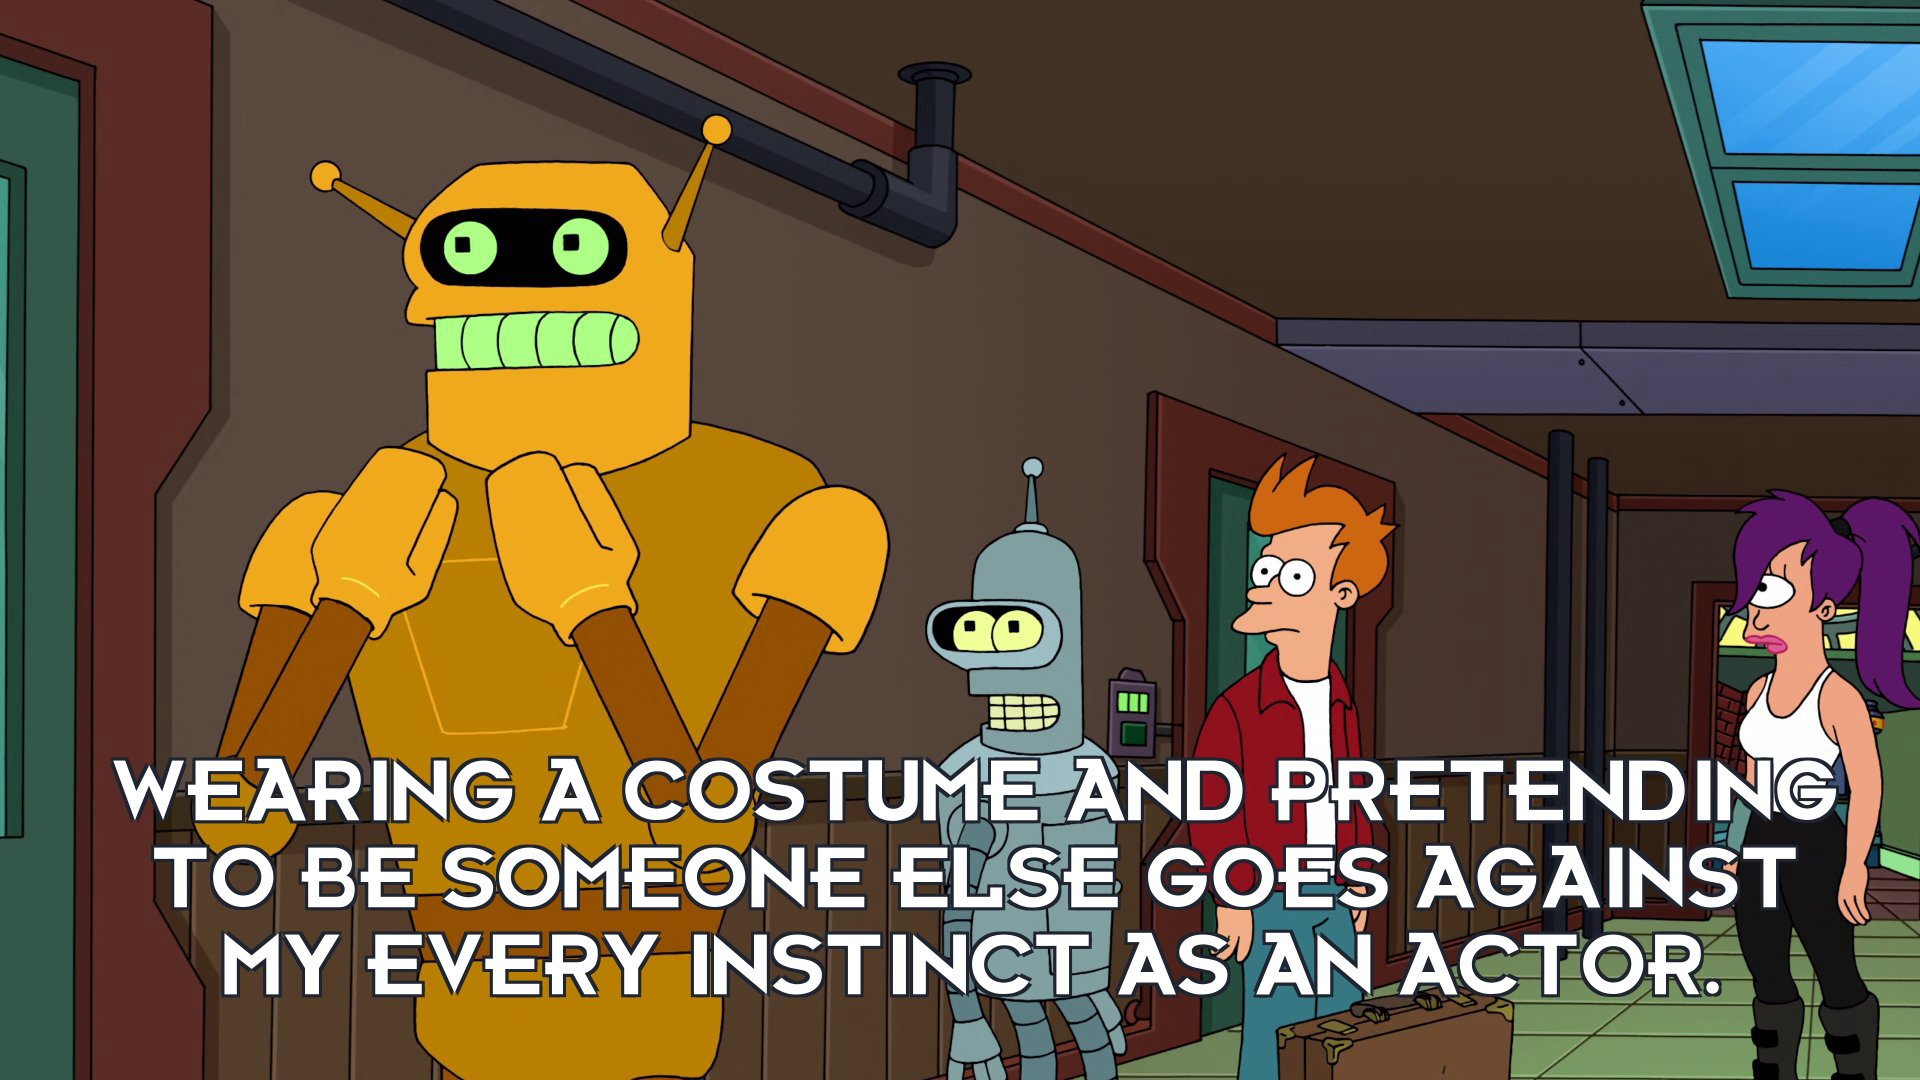 Calculon: Wearing a costume and pretending to be someone else goes against my every instinct as an actor.